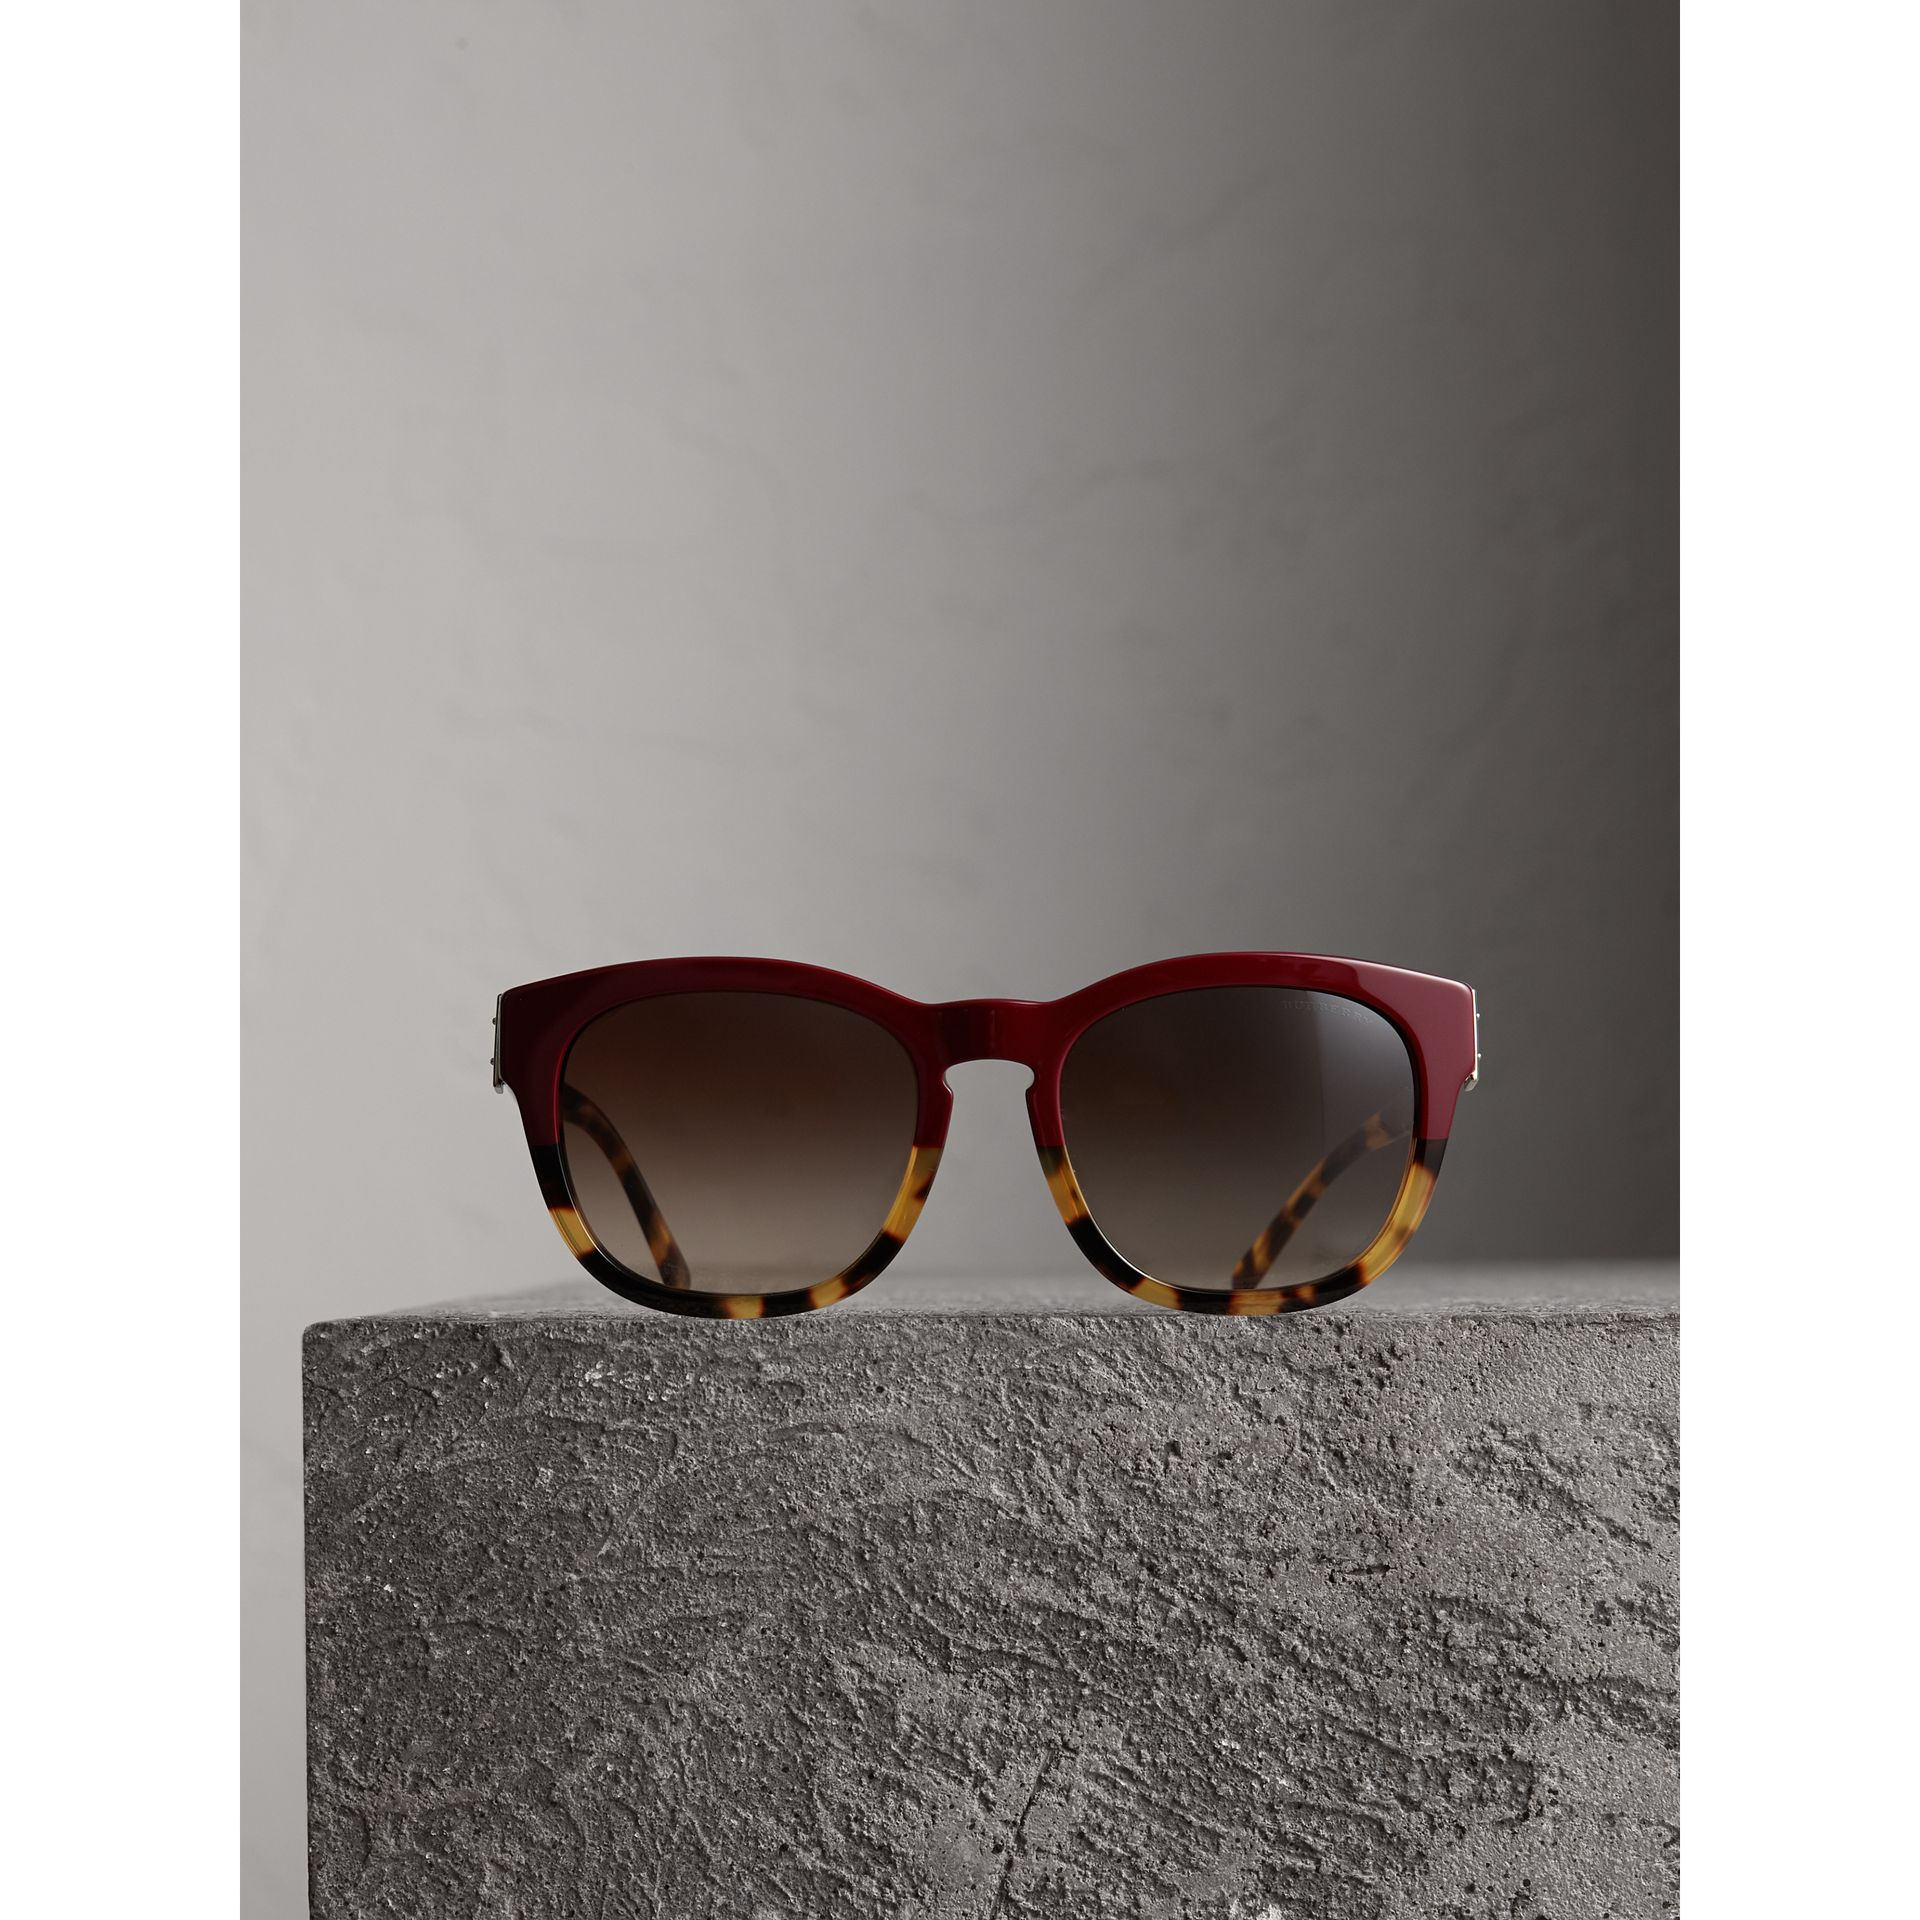 Buckle Detail Square Frame Sunglasses in Burgundy - Women | Burberry - gallery image 4